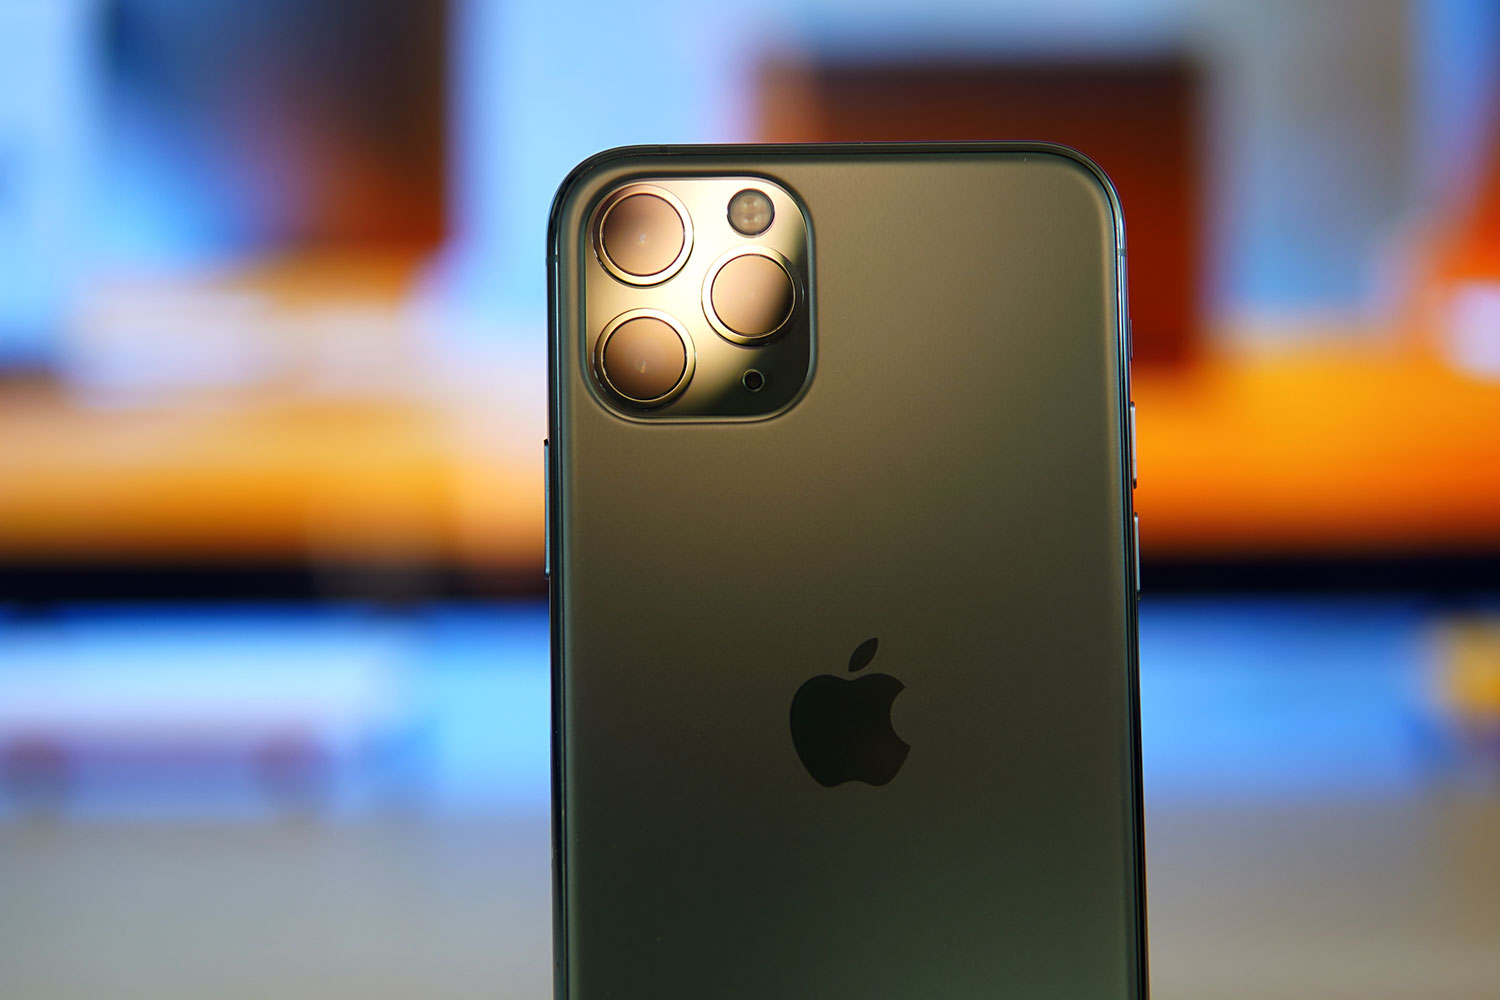 Some iPhone 11 Users Are Seeing Increased Battery Health After Battery Recalibration